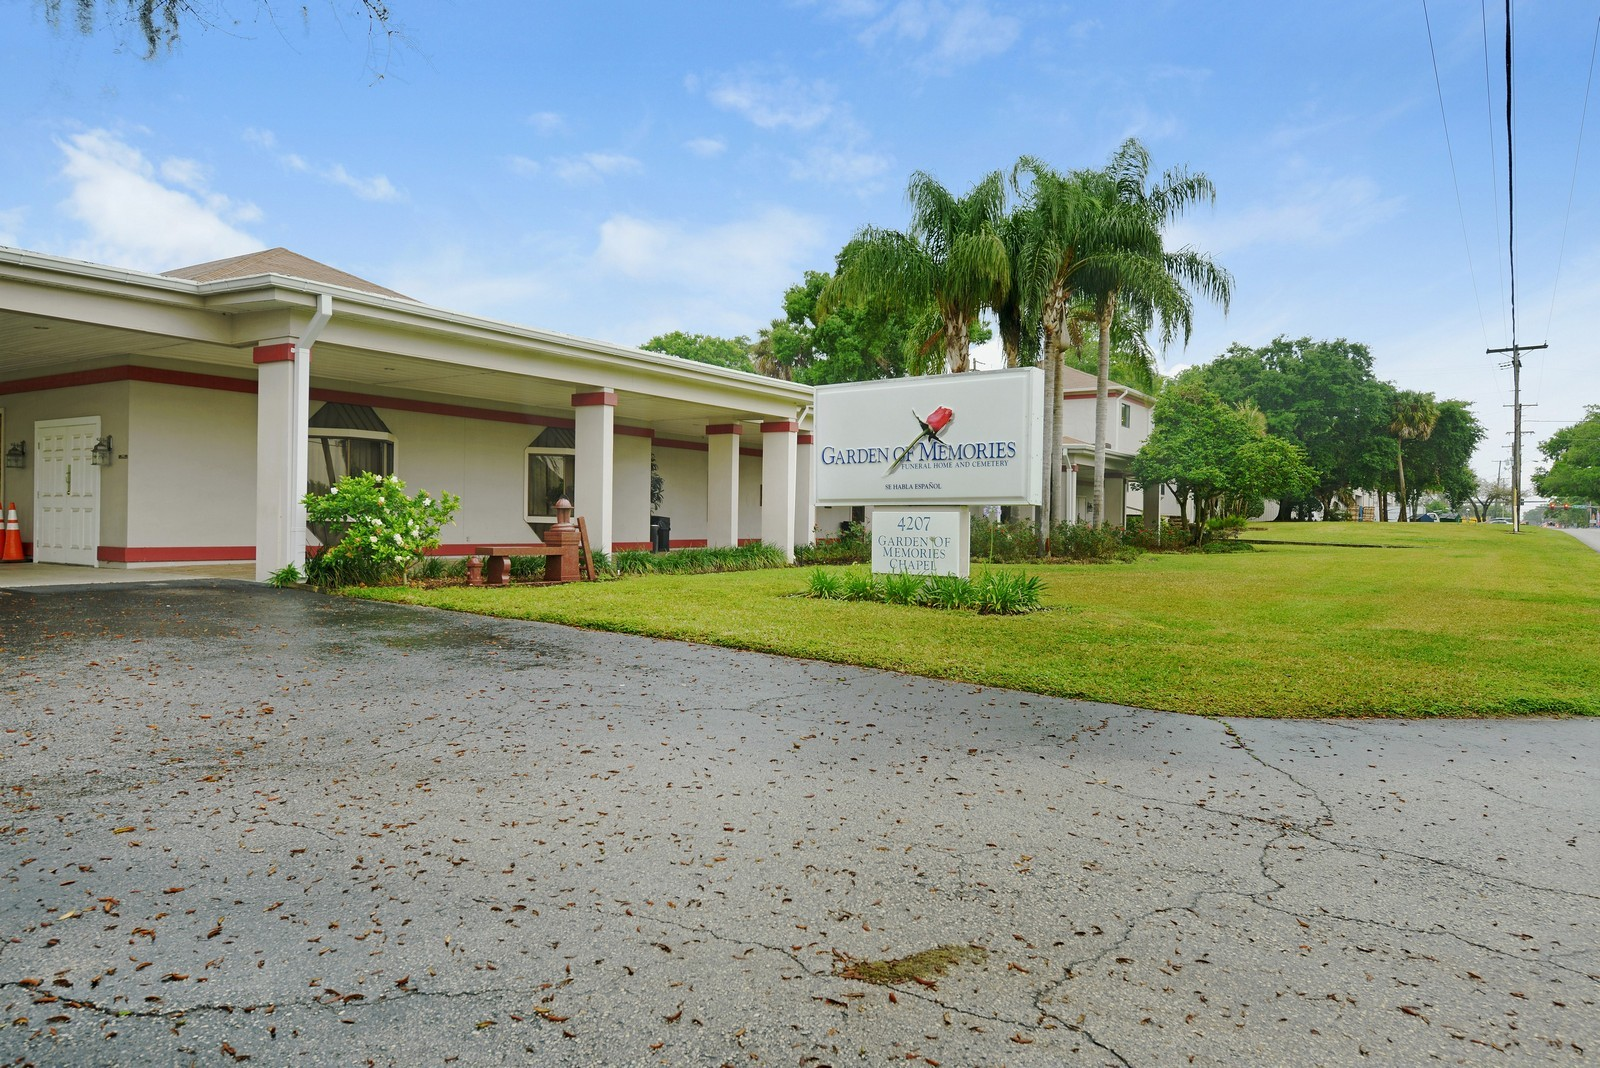 fl real estate photography 4207 east lake ave garden of memories tampa - Garden Of Memories Funeral Home